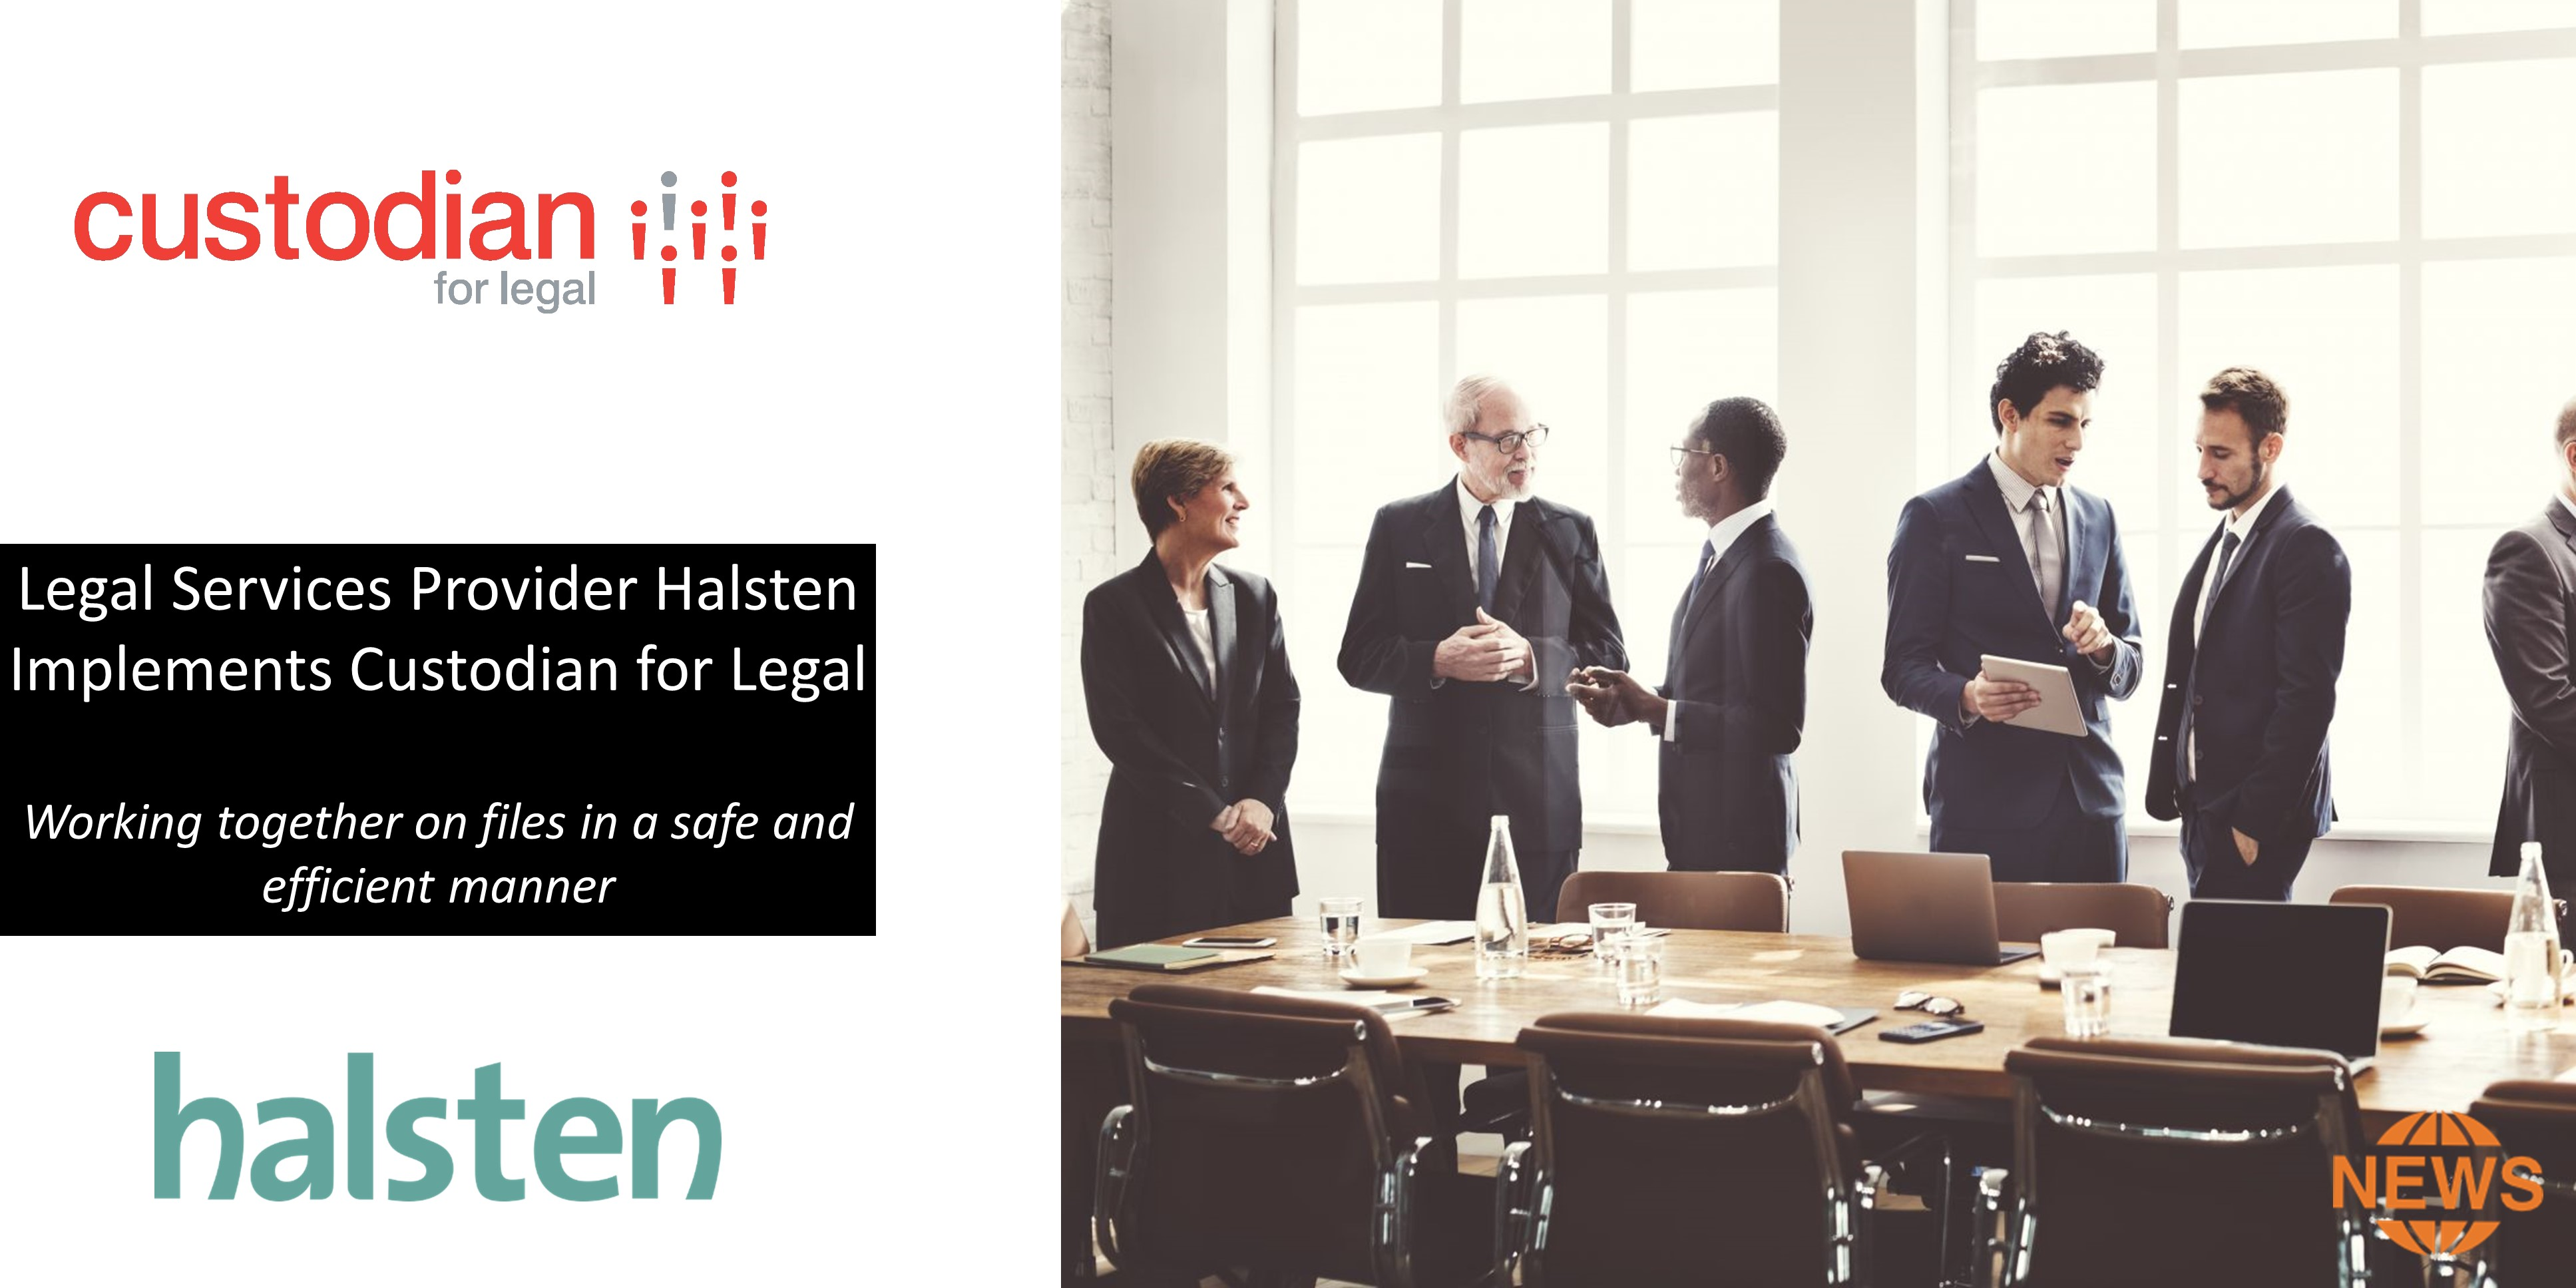 Legal-Services-Provider-Halsten-Implements-Custodian-for-Legal